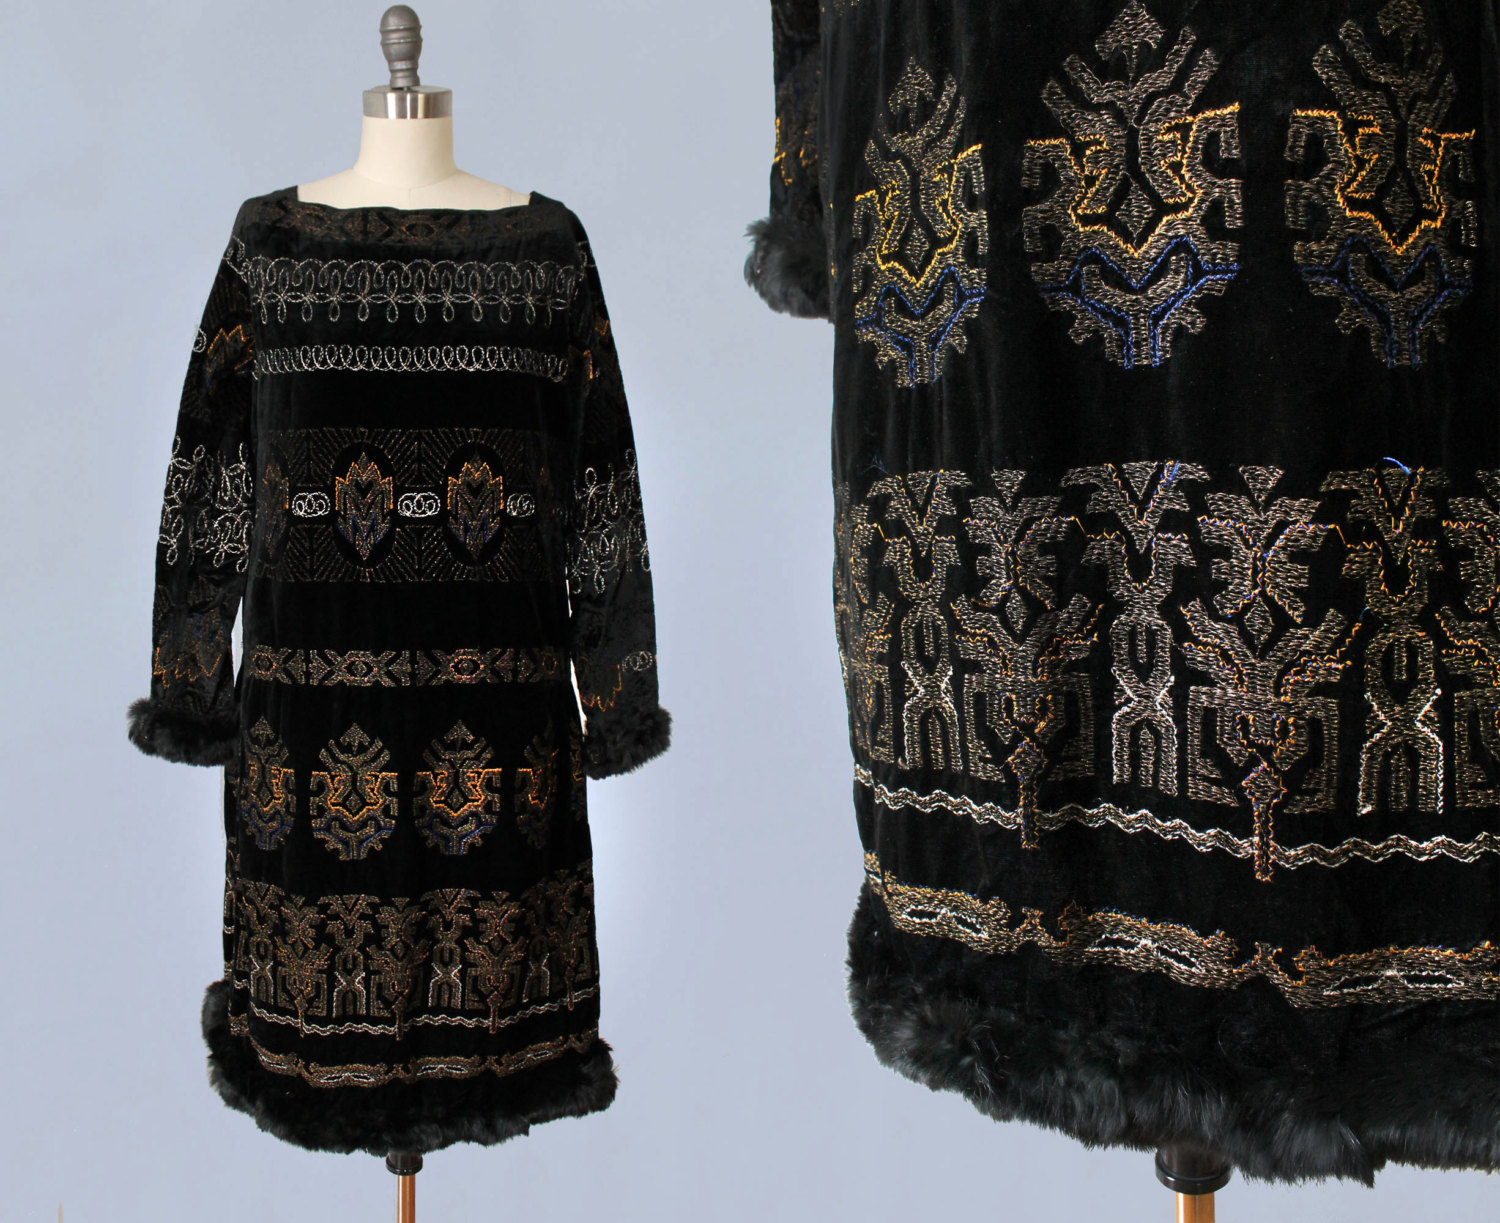 Black velvet dress with embroidered Aztec motifs and fur trim. 1920s.